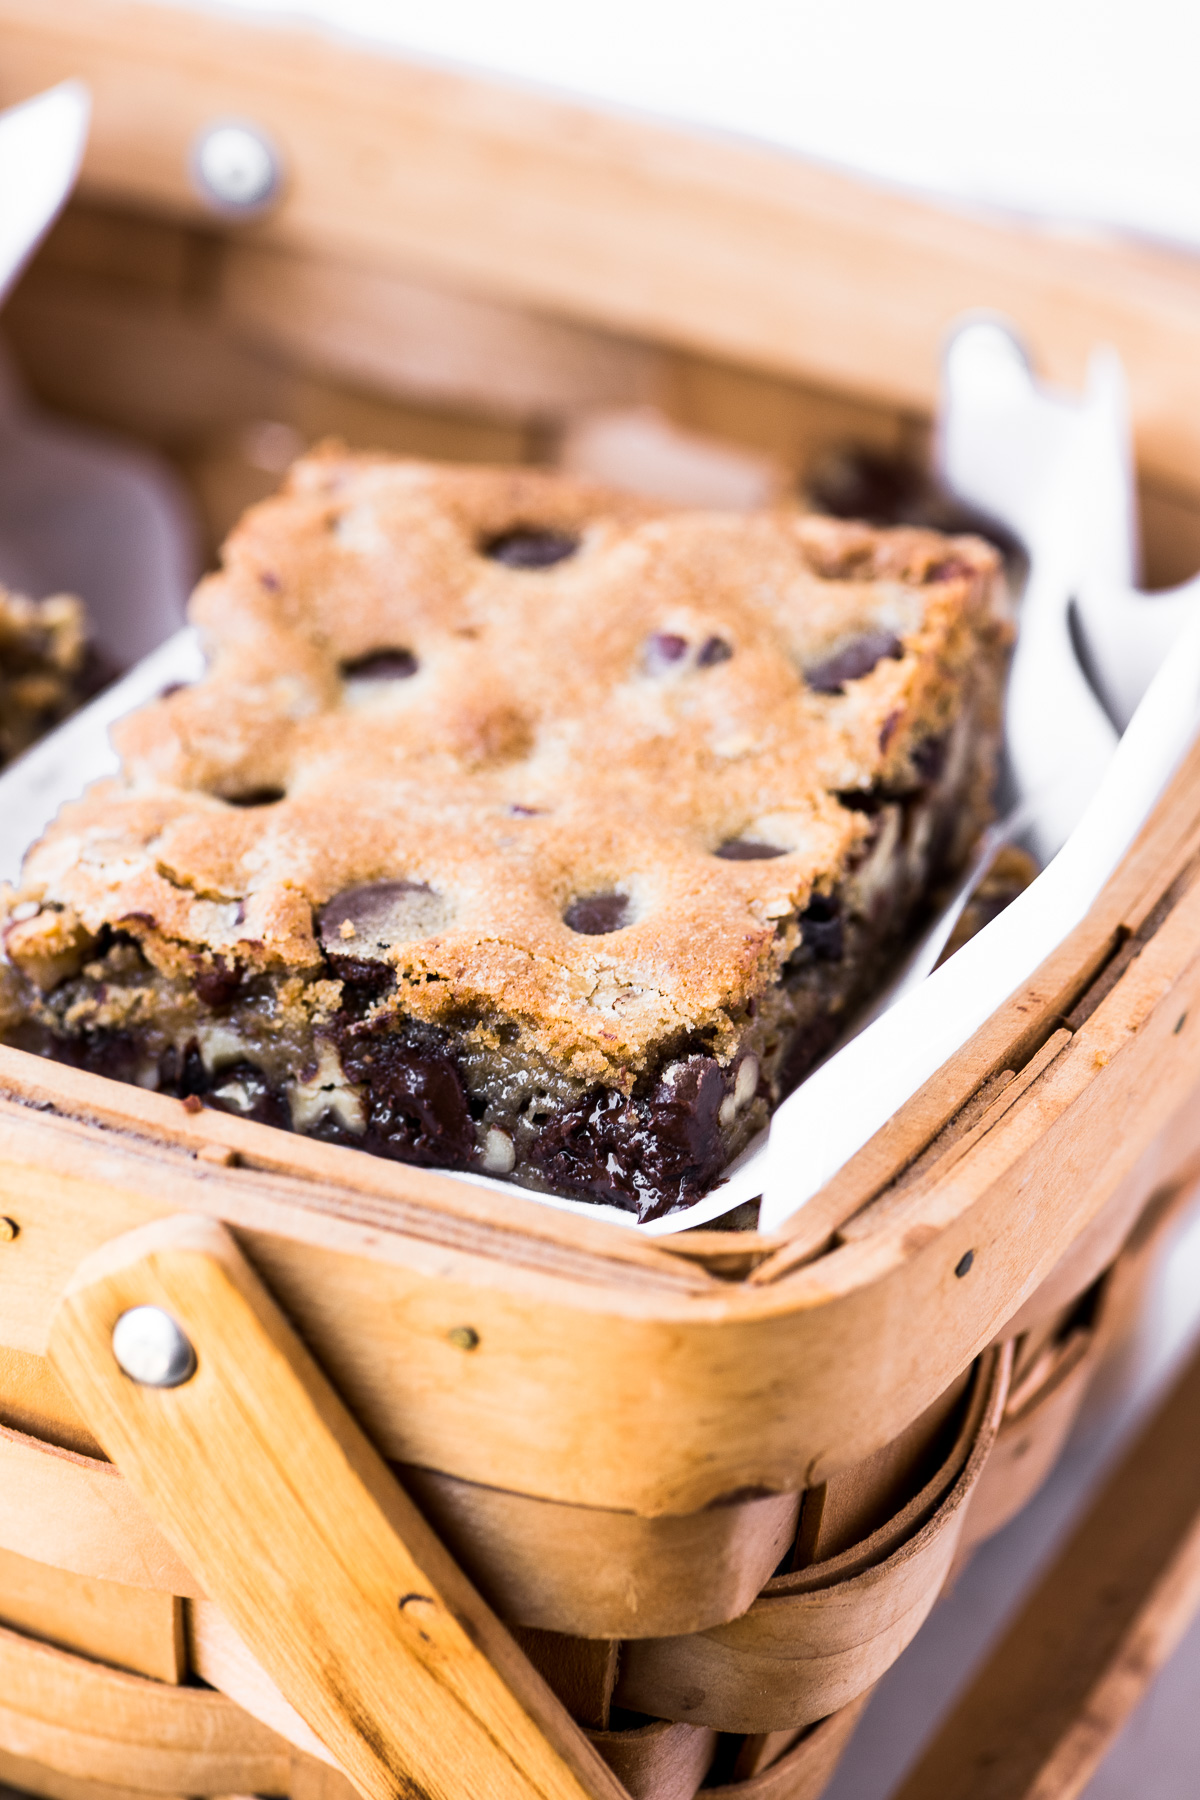 Toasted pecan and dark chocolate blondie in a basket